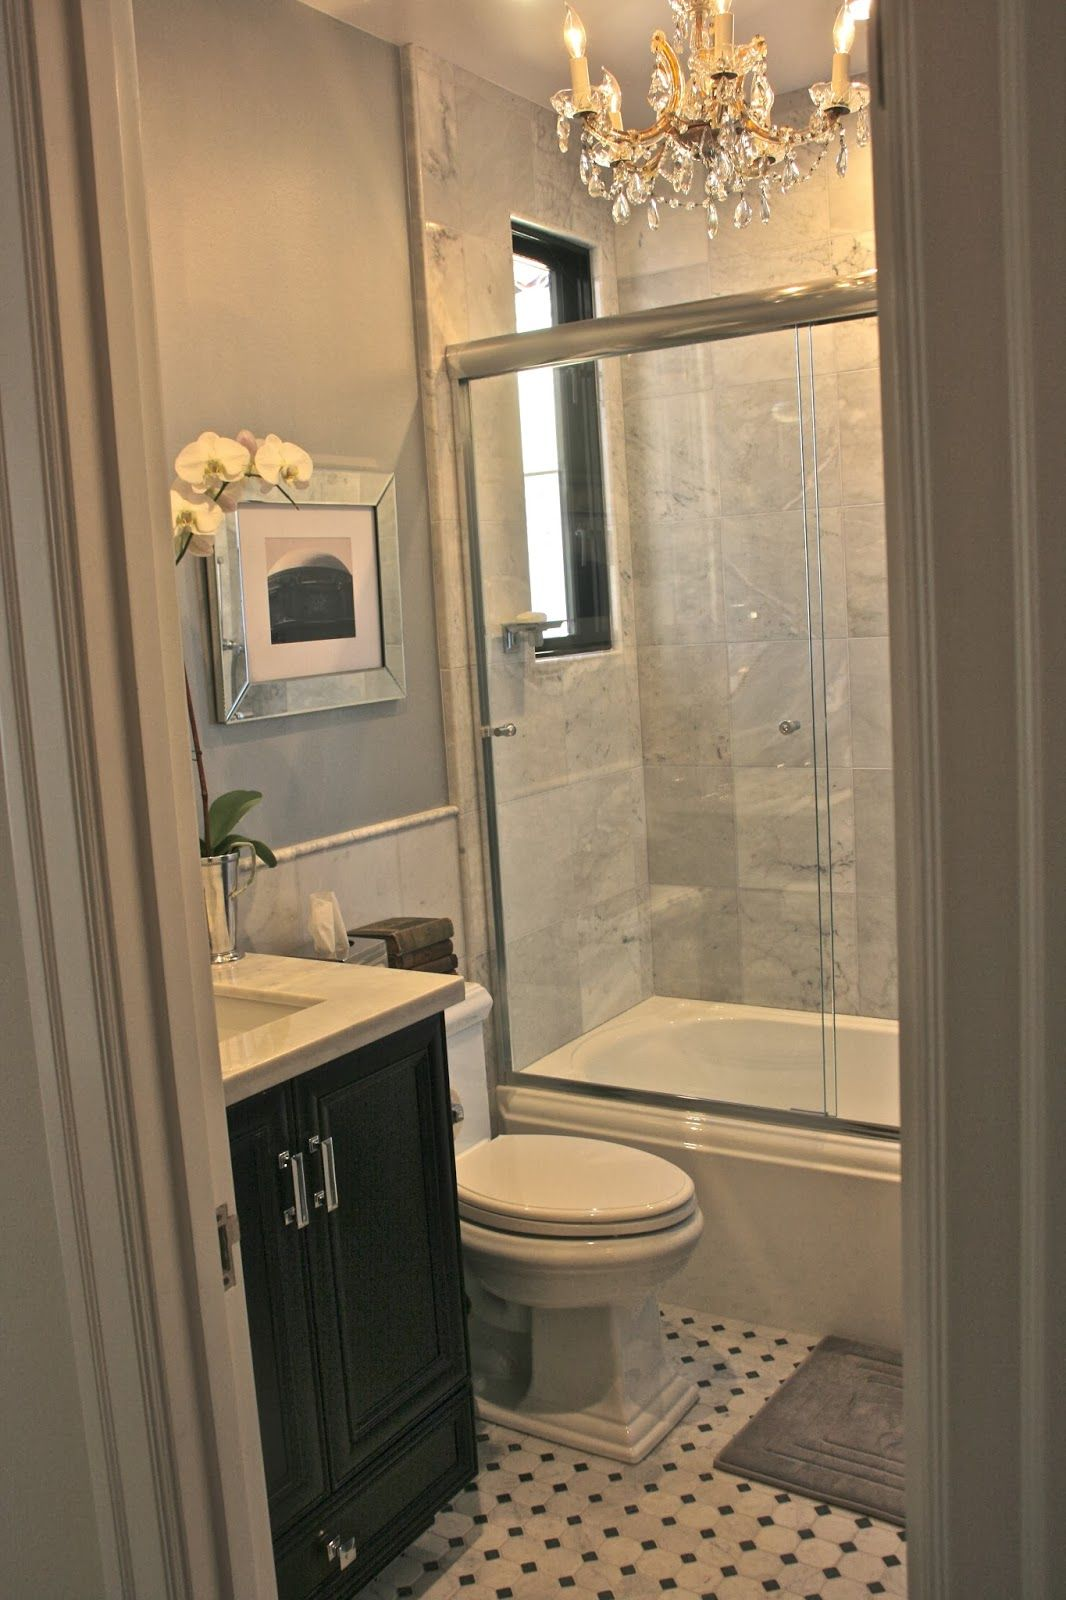 Small window ideas bathrooms  a night at the boxwood house guest bath with window in shower